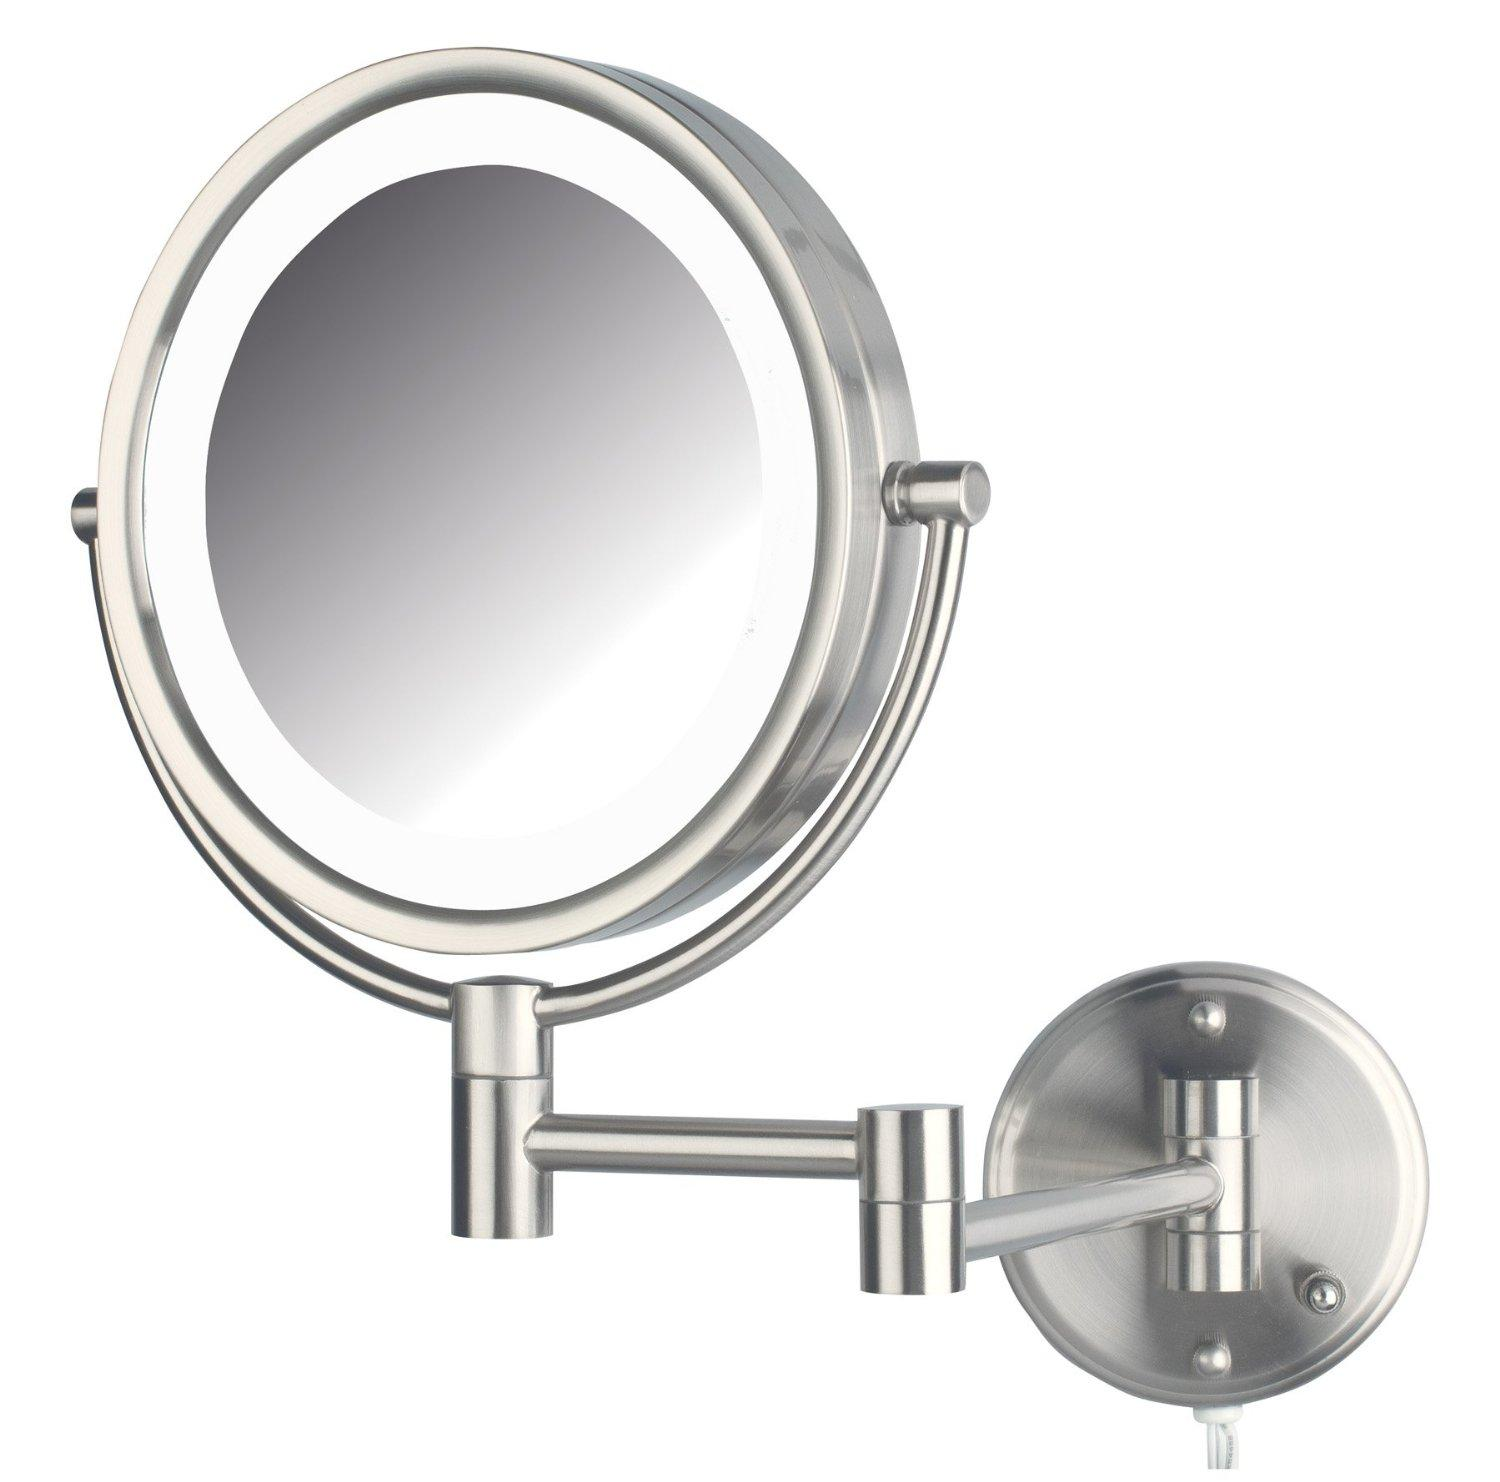 Amazon.com: Jerdon HL88NL 8.5-Inch LED Lighted Wall Mount Makeup Mirror with 8x Magnification ...